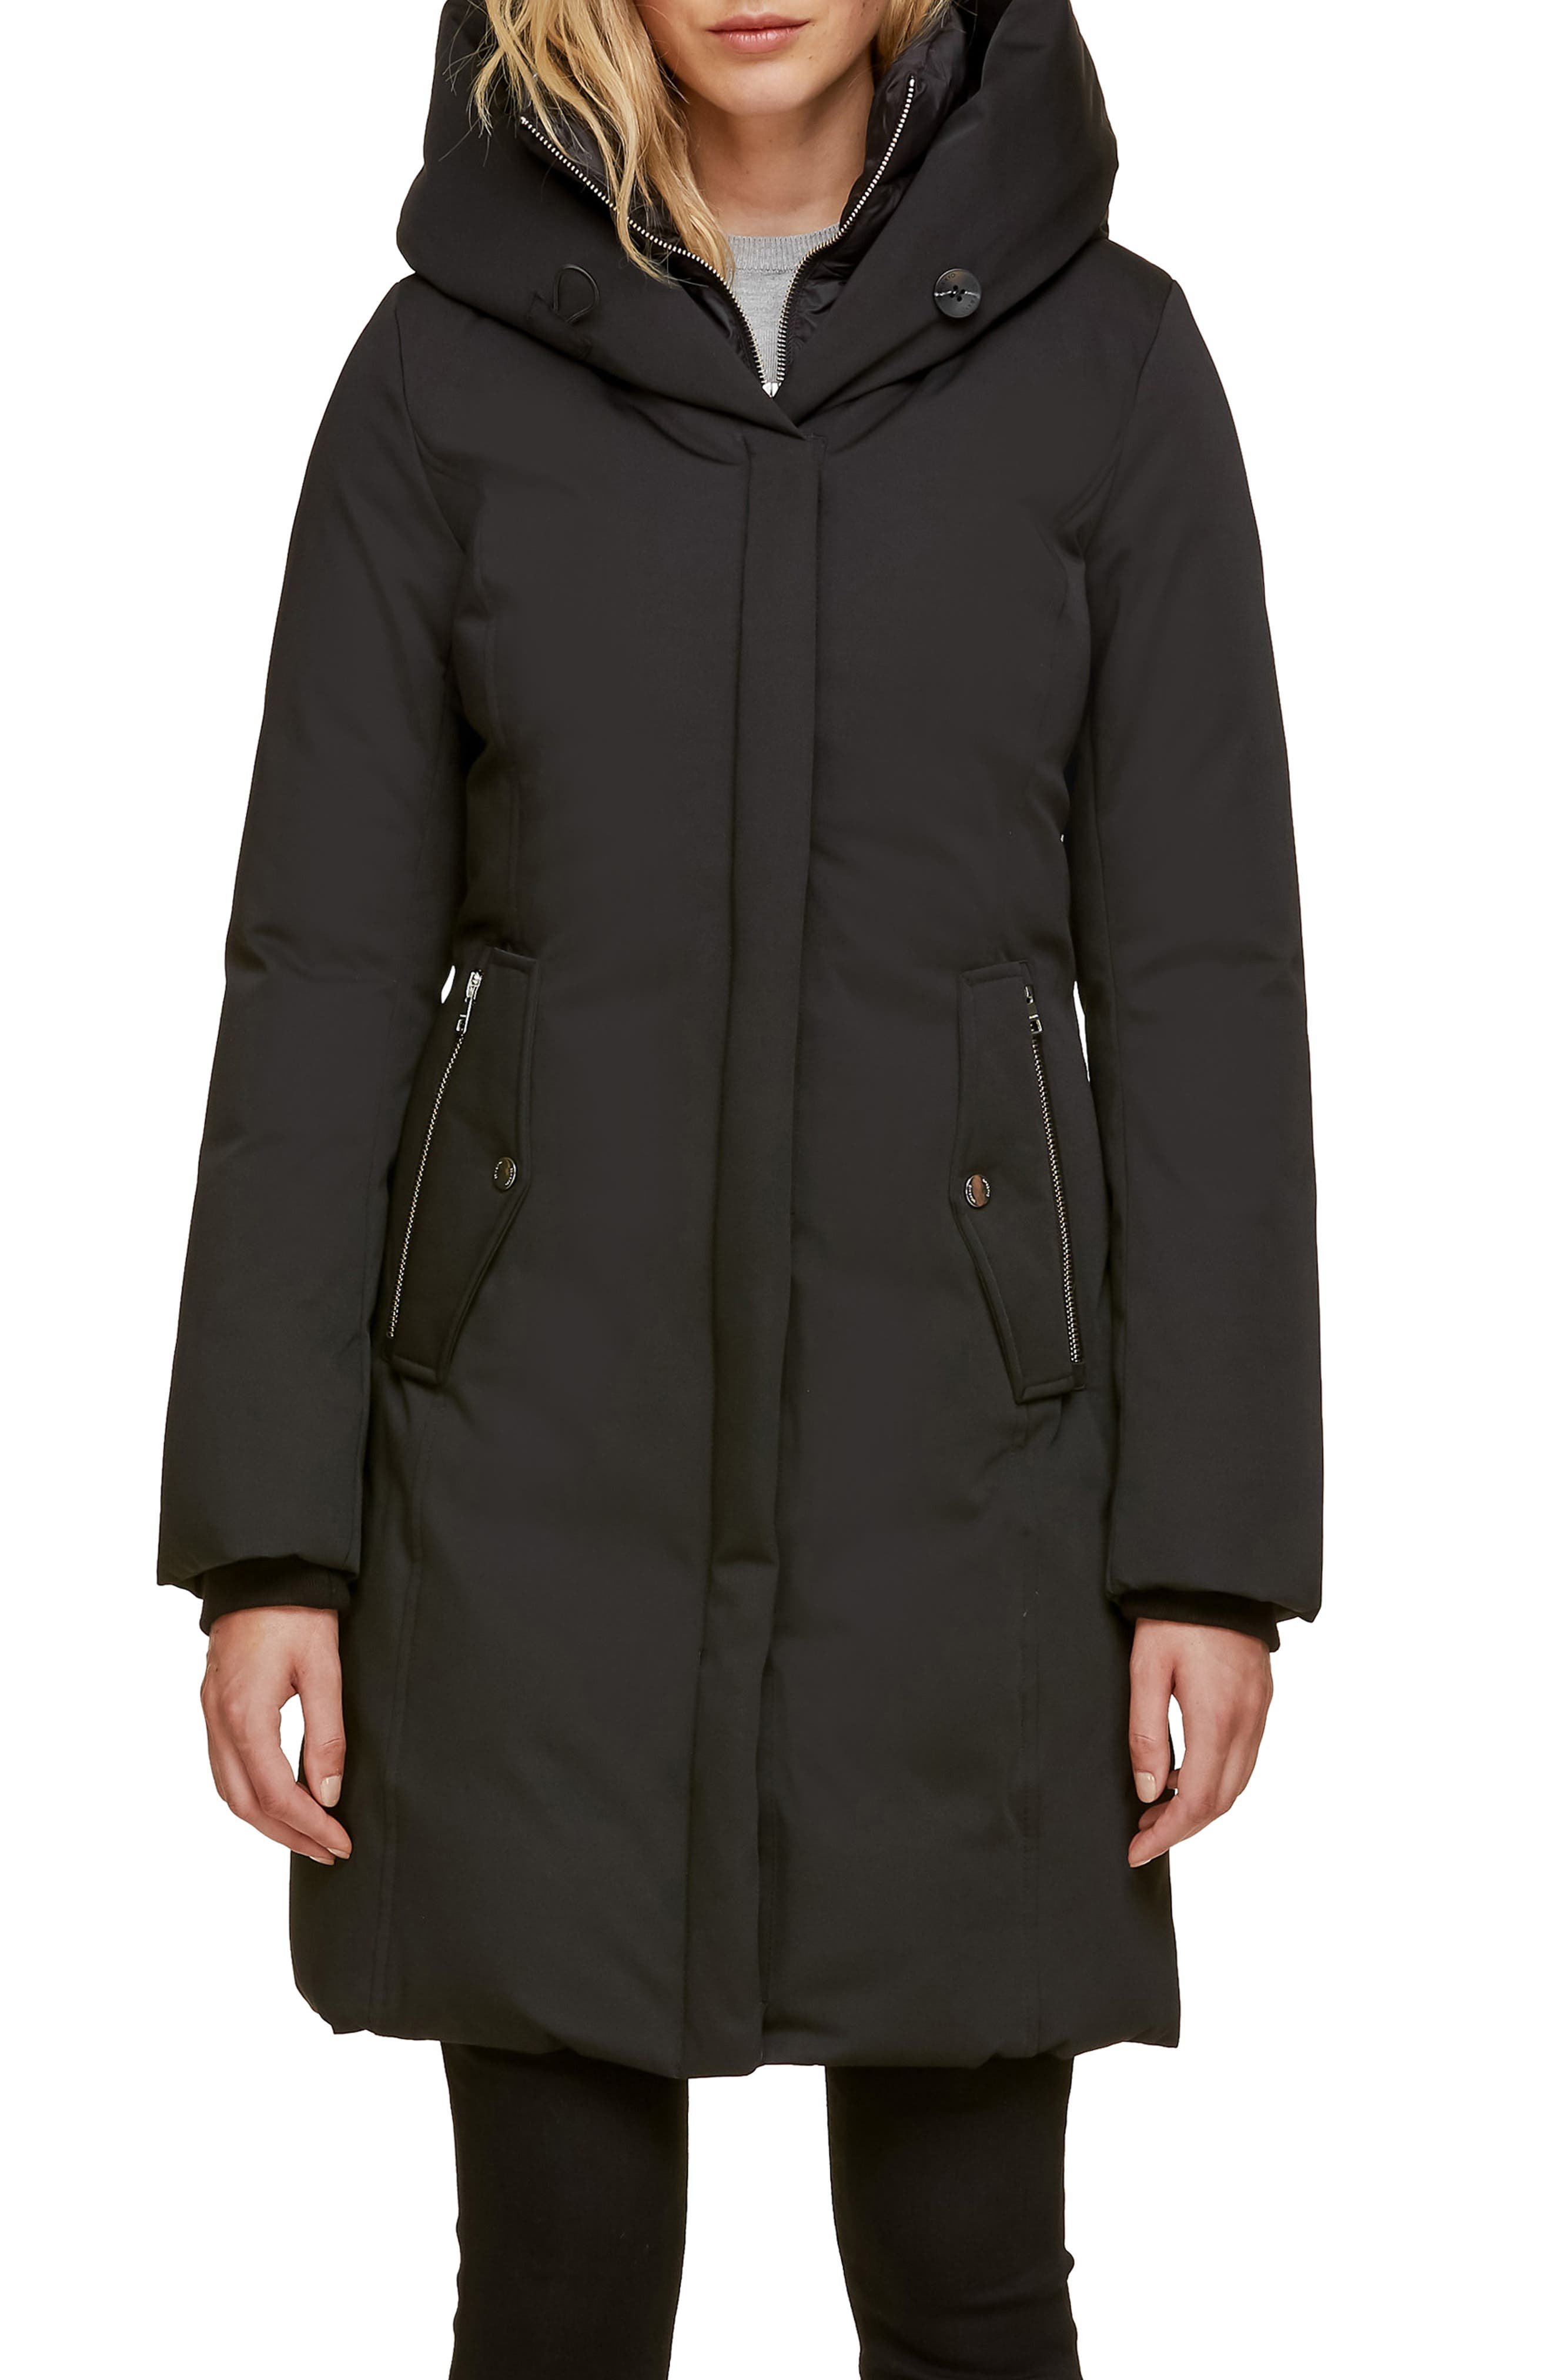 Soia & Kyo Slim Fit Hooded Down Coat, Black